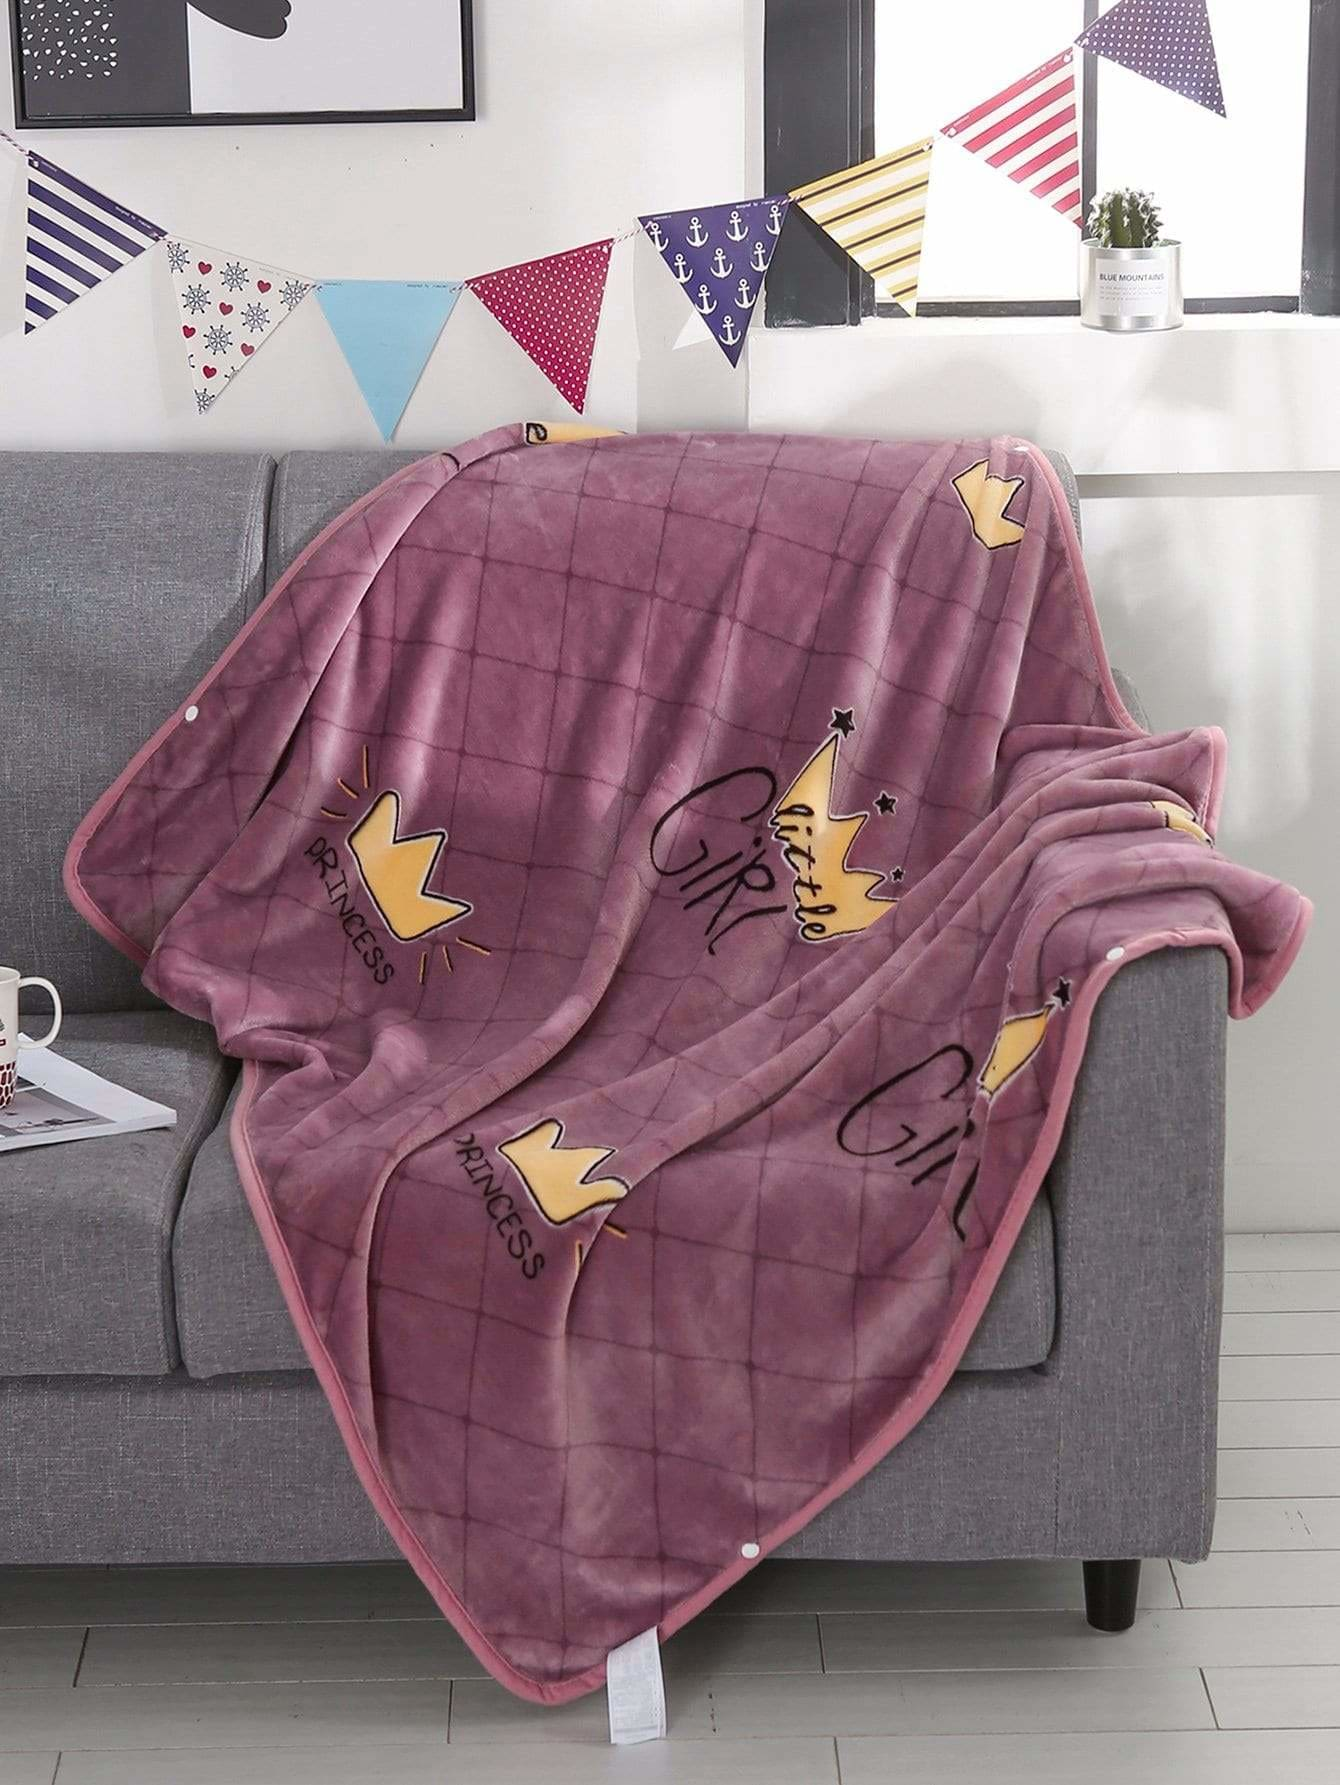 Crown Print Velvet Blanket 1PC